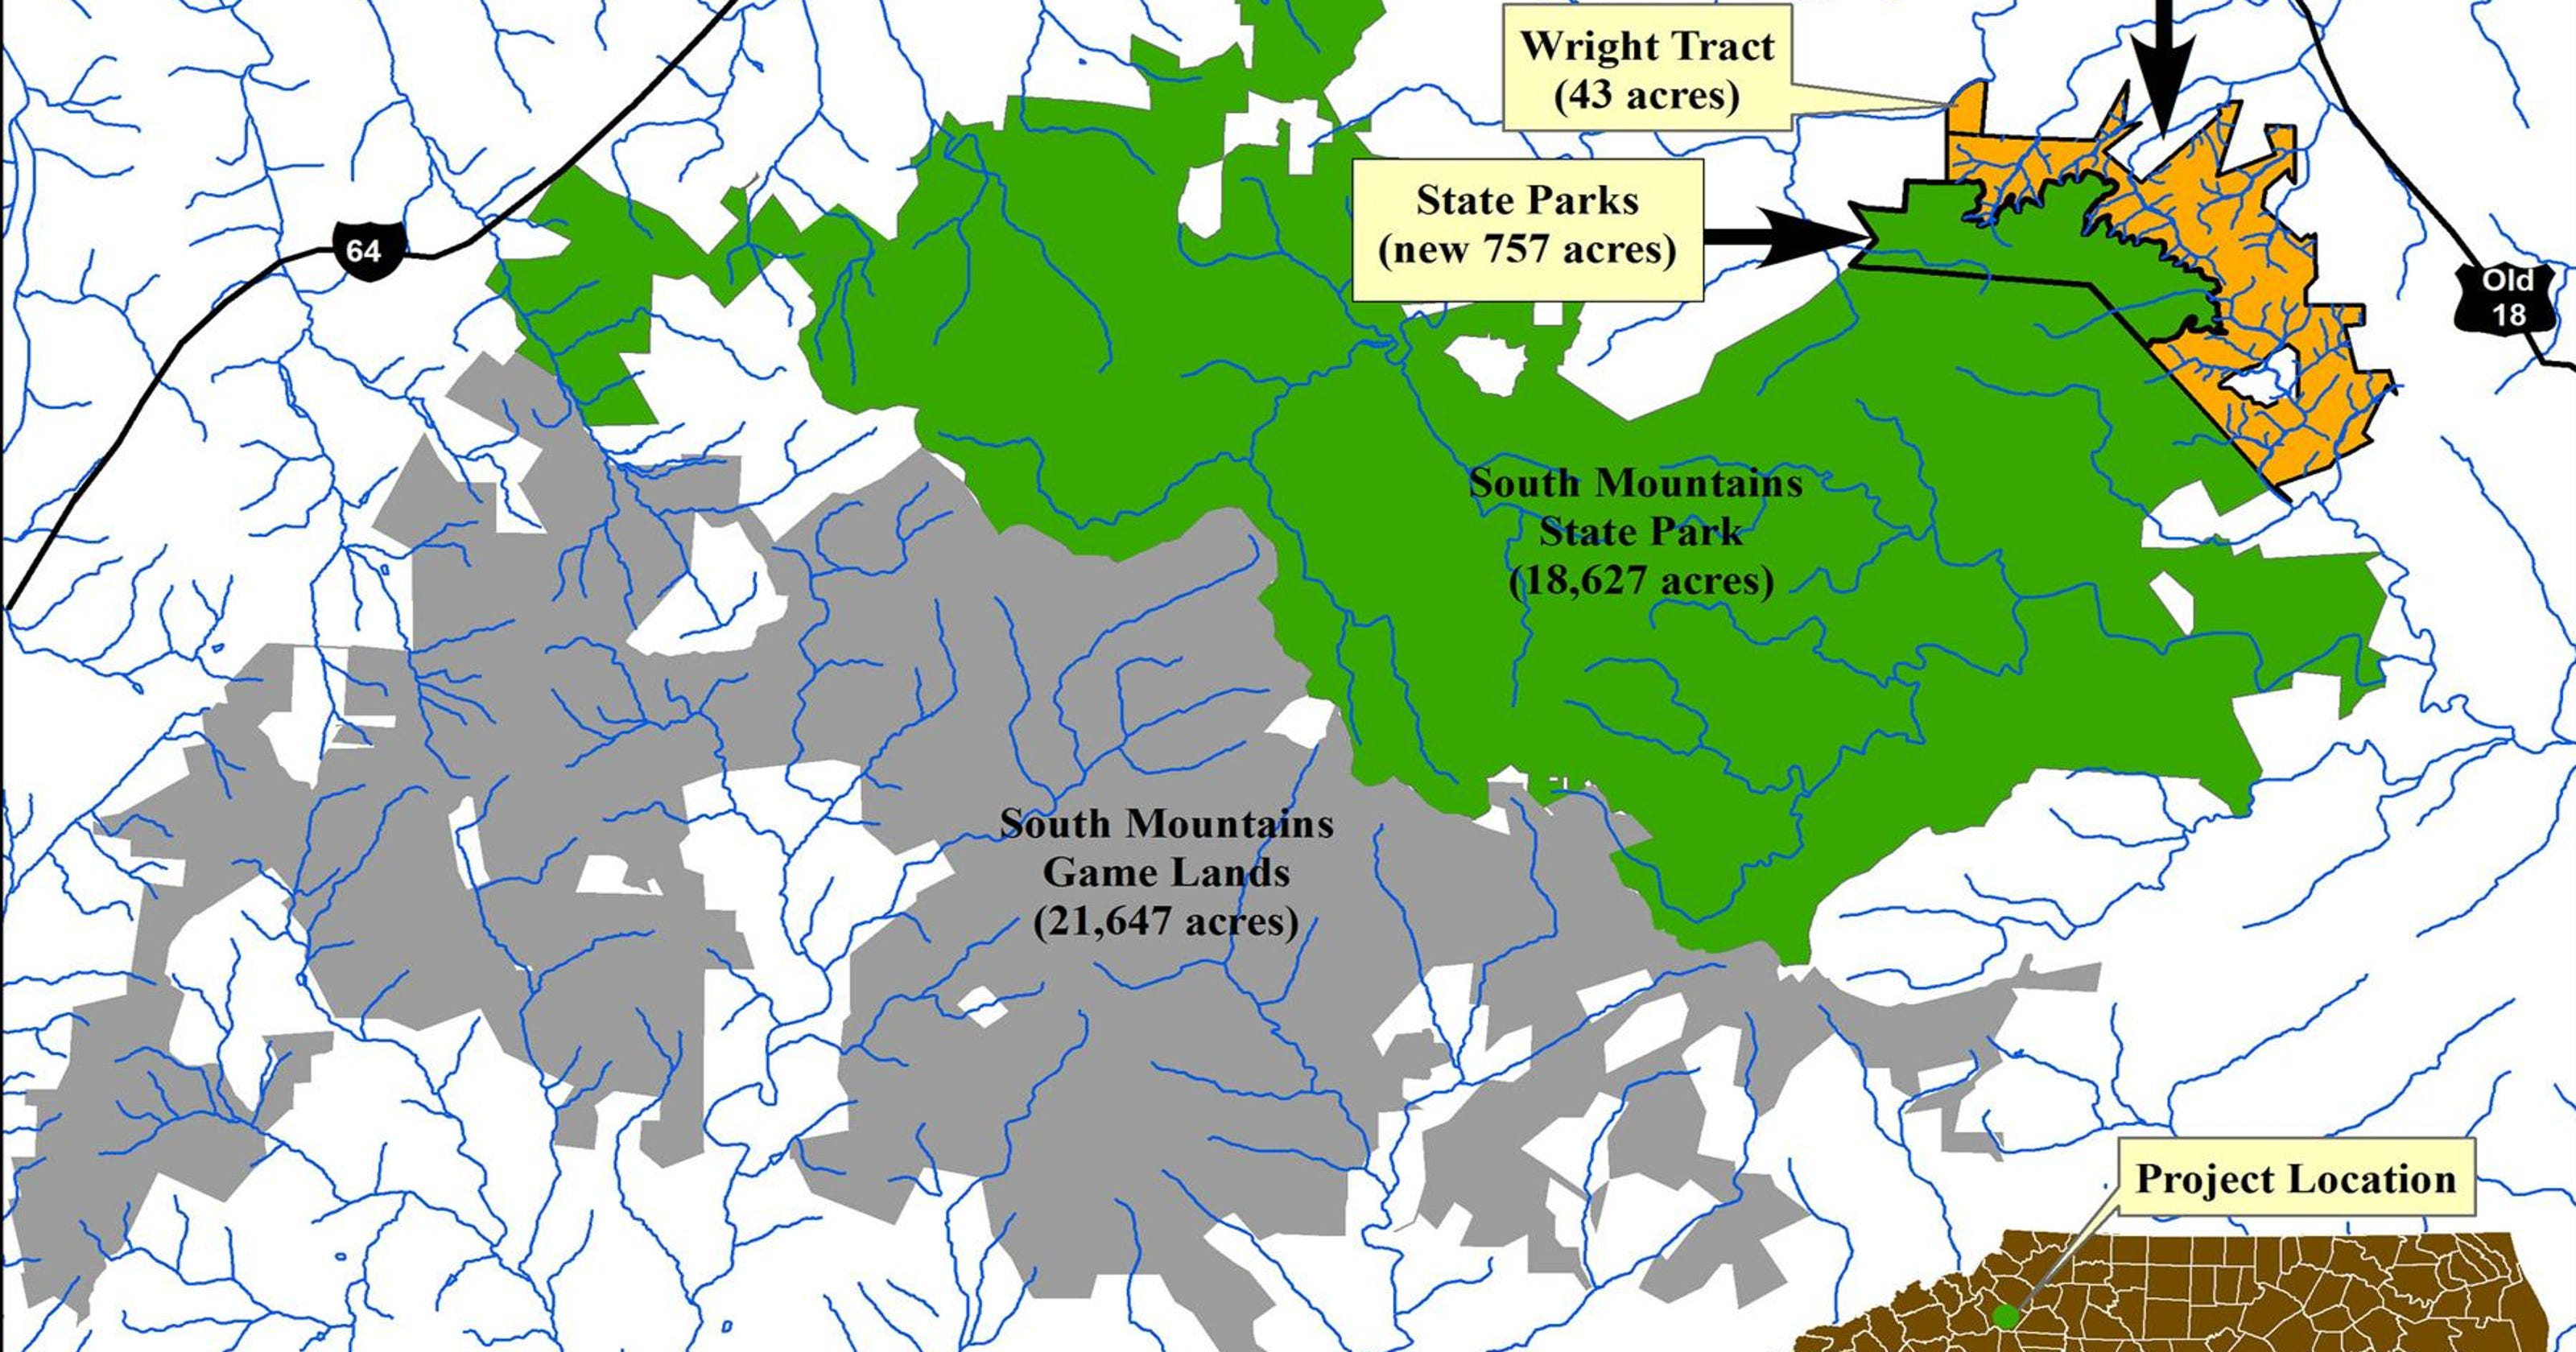 State Park Nc Map.Conservancy Protects South Mountains Headwaters Tract